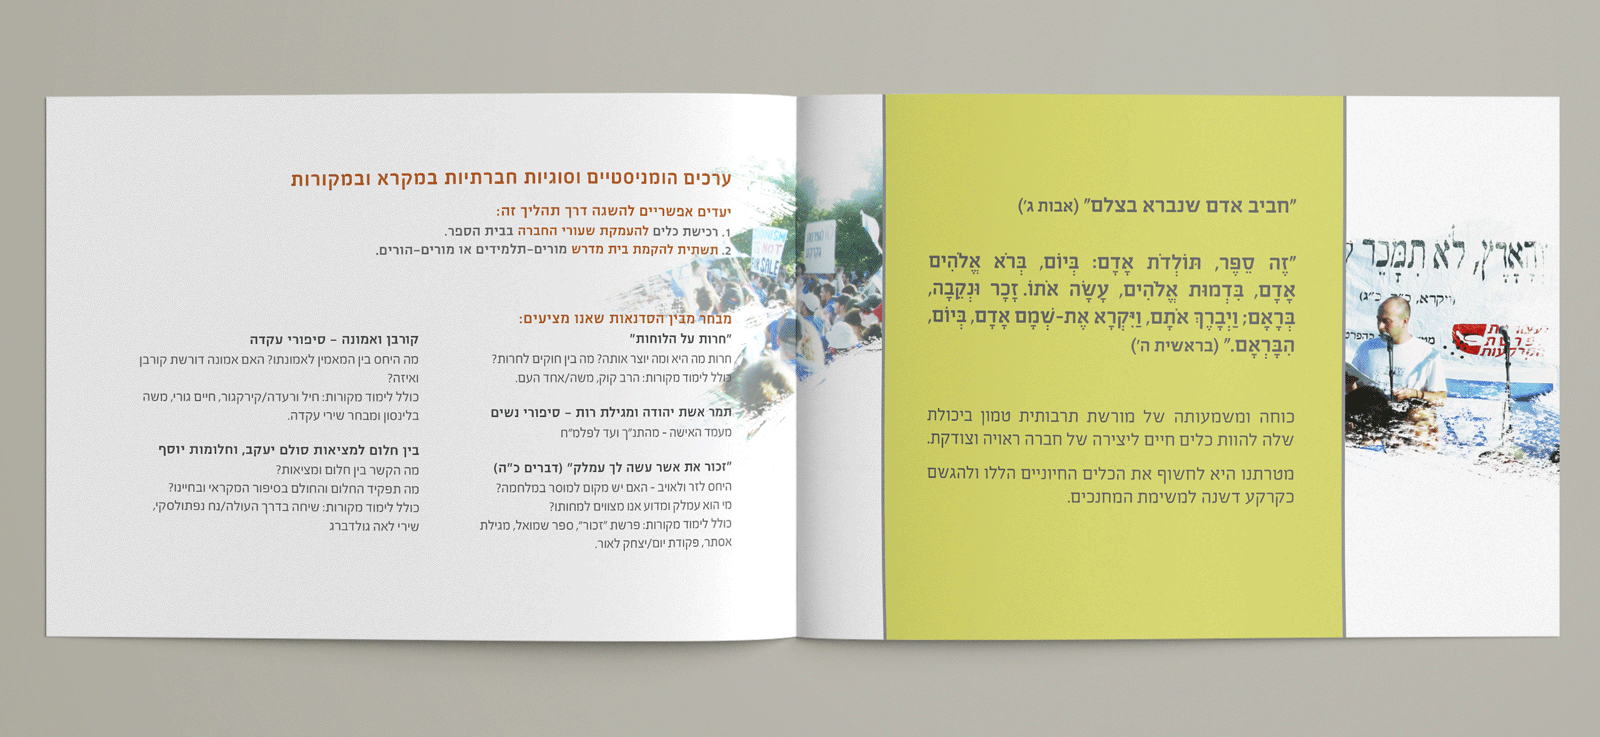 https://bigeyes.co.il/wp-content/uploads/2019/07/shitim-brochure-5.png